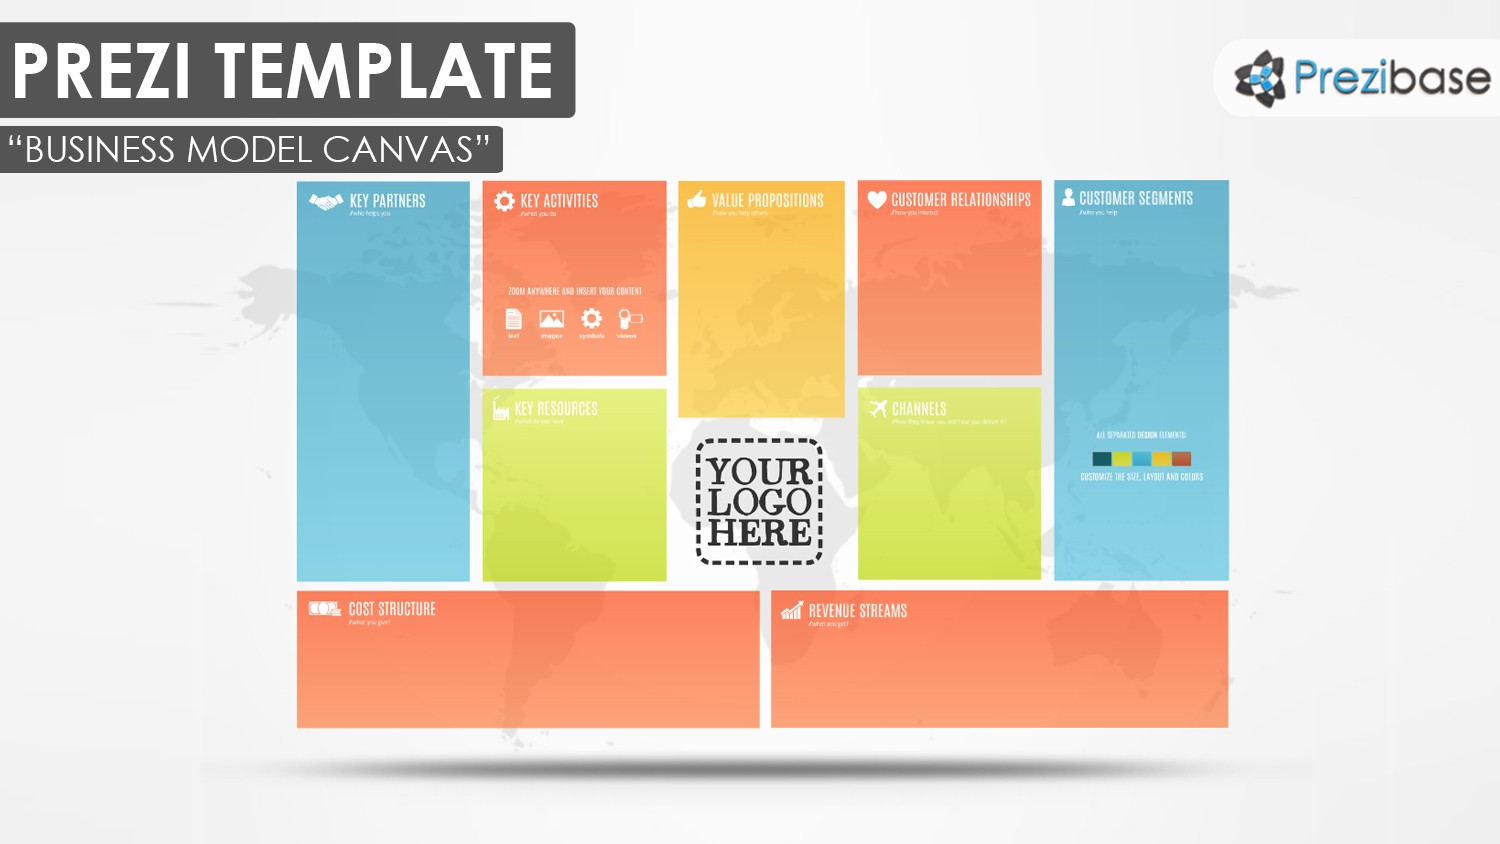 Business model canvas prezi template prezibase business model canvas colorful pitch world map prezi template accmission Gallery